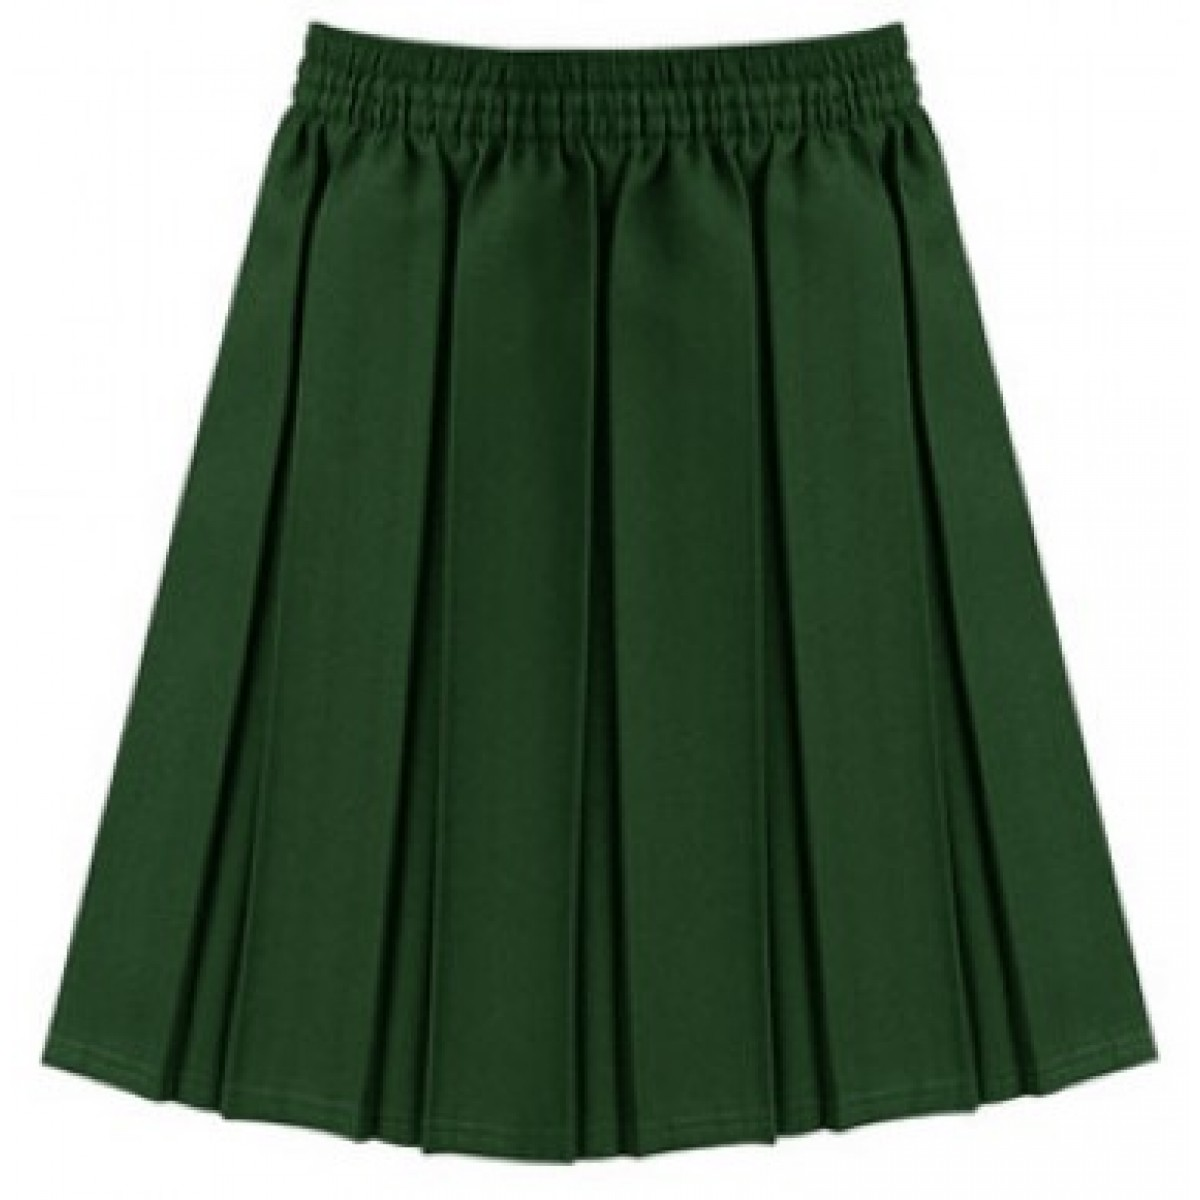 Online shopping for popular & hot Green School Skirts from Women's Clothing & Accessories, Skirts, Novelty & Special Use, School Uniforms and more related Green School Skirts like black school skirts, green school dress, school skirt black, school white dress. Discover over of the best Selection Green School Skirts on coolmfilehj.cf